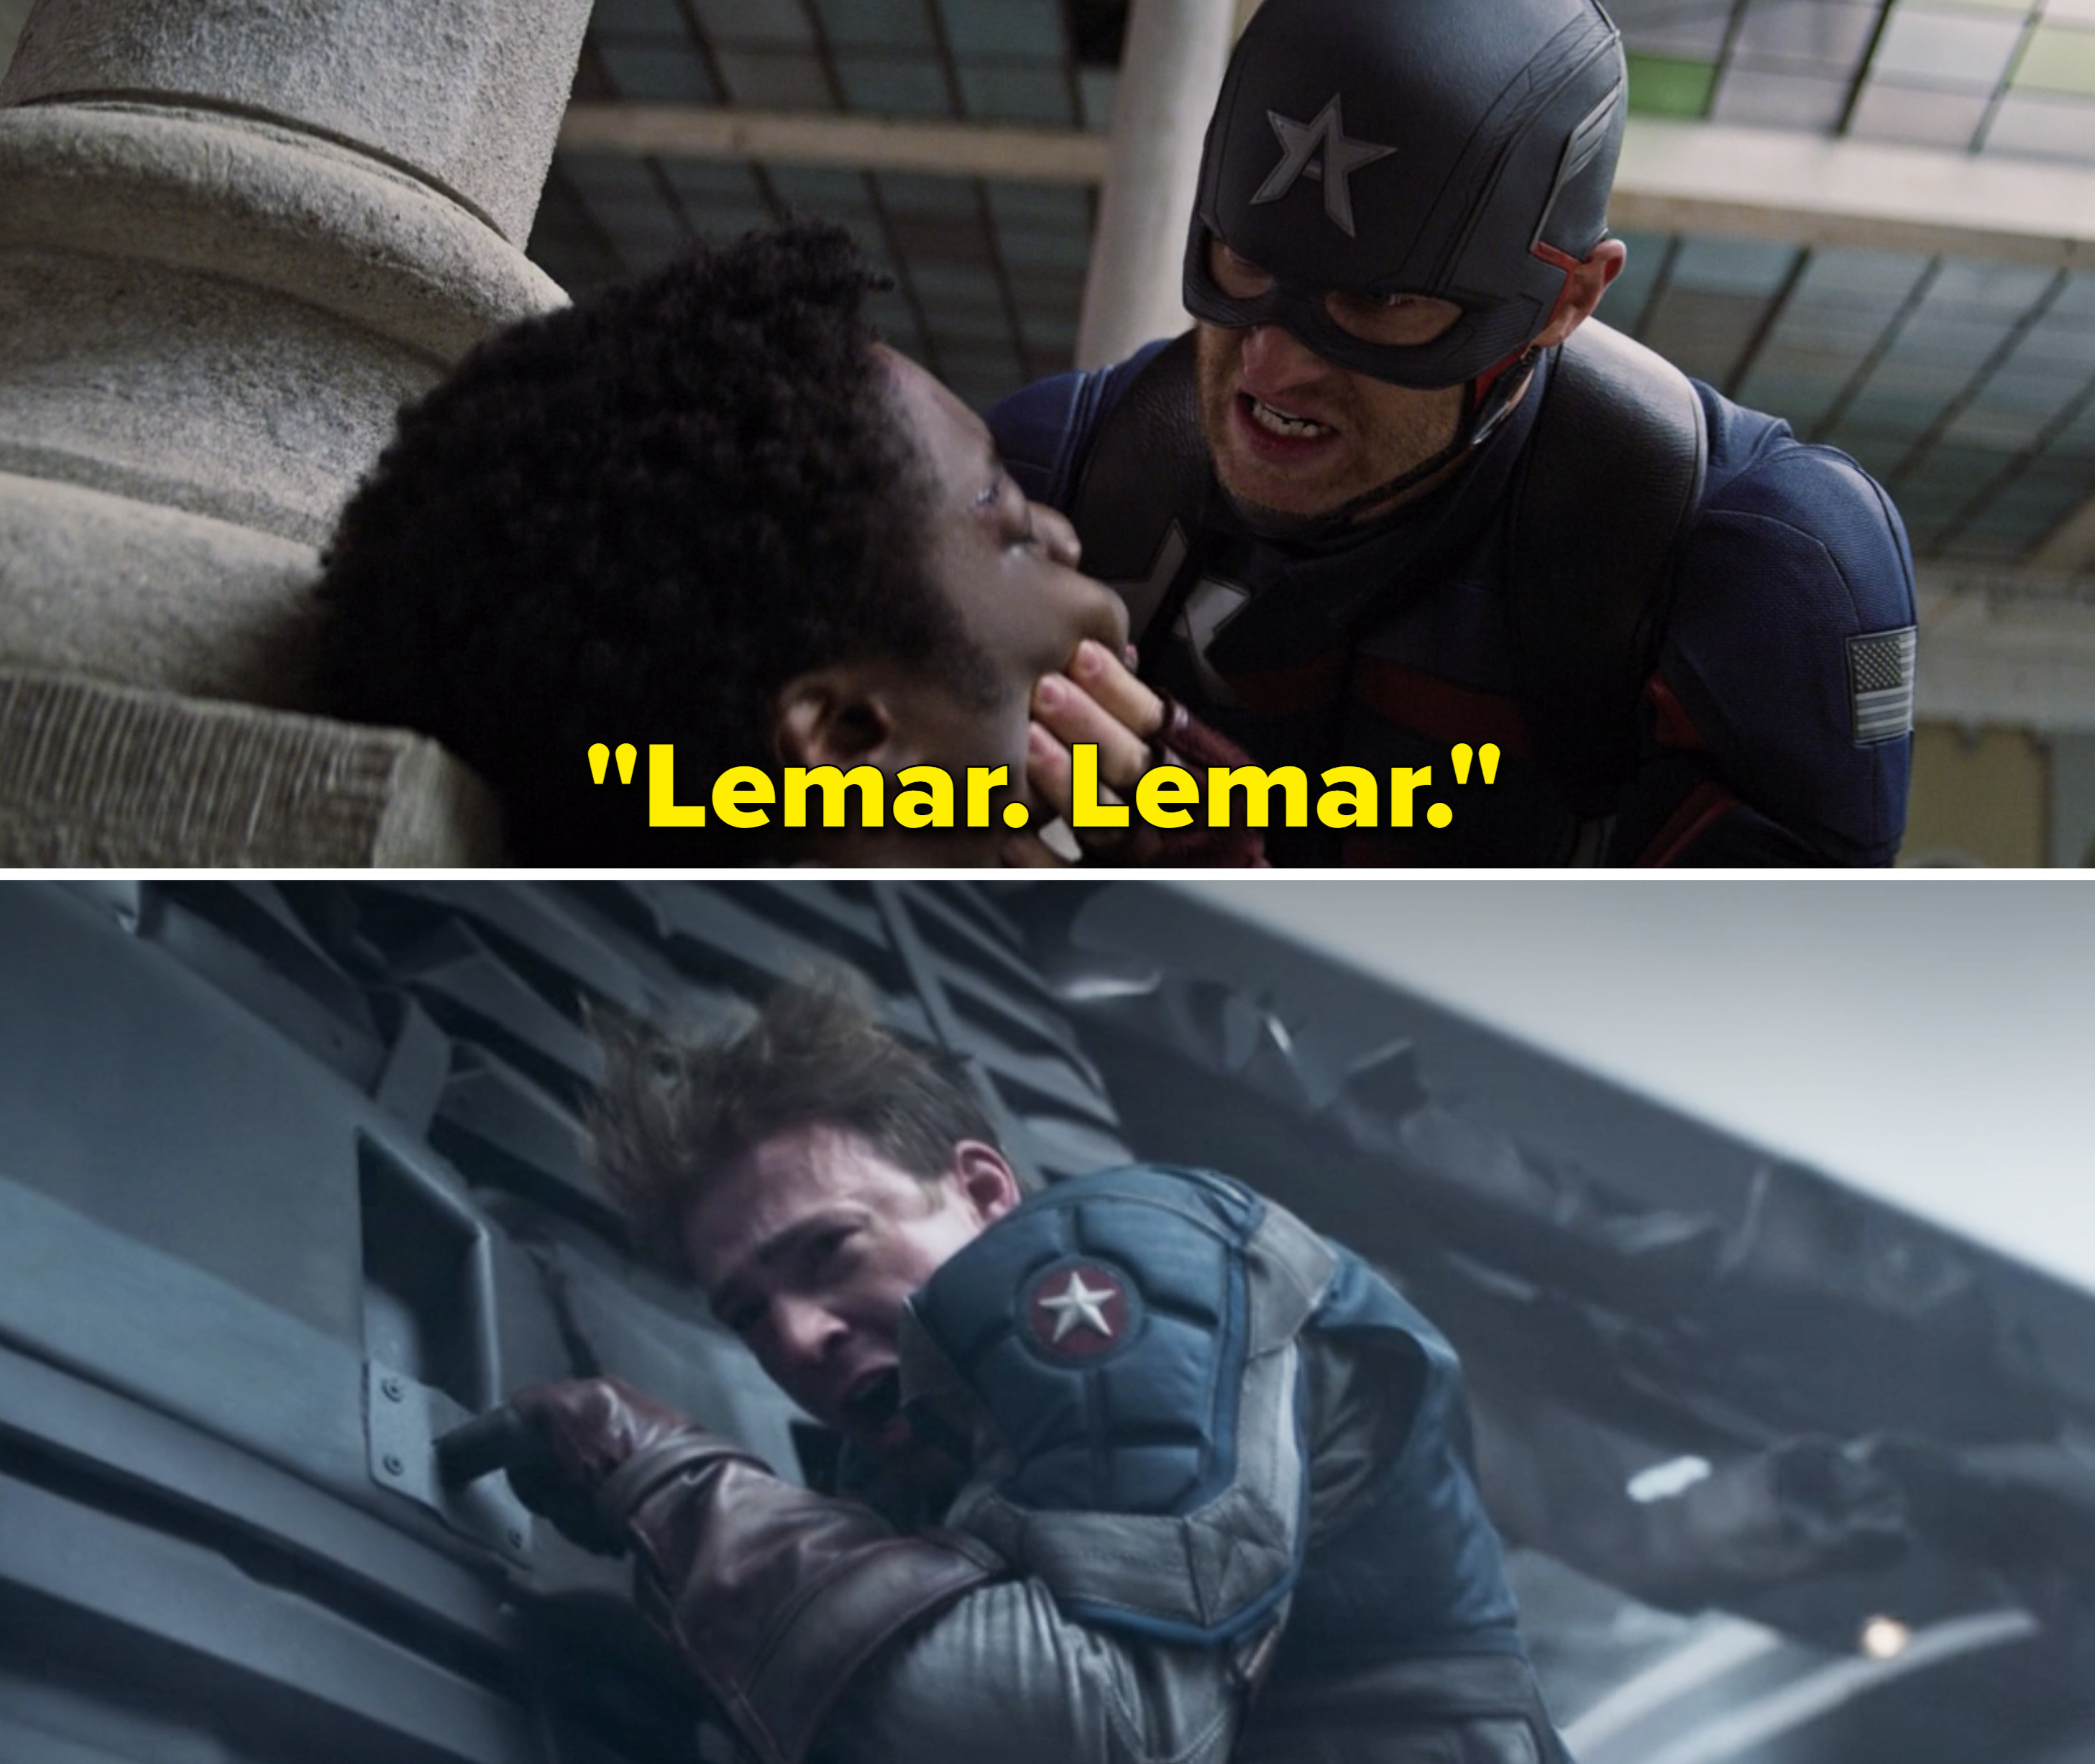 Walker over Lemar's body saying his name vs. Steve crying after Bucky fell